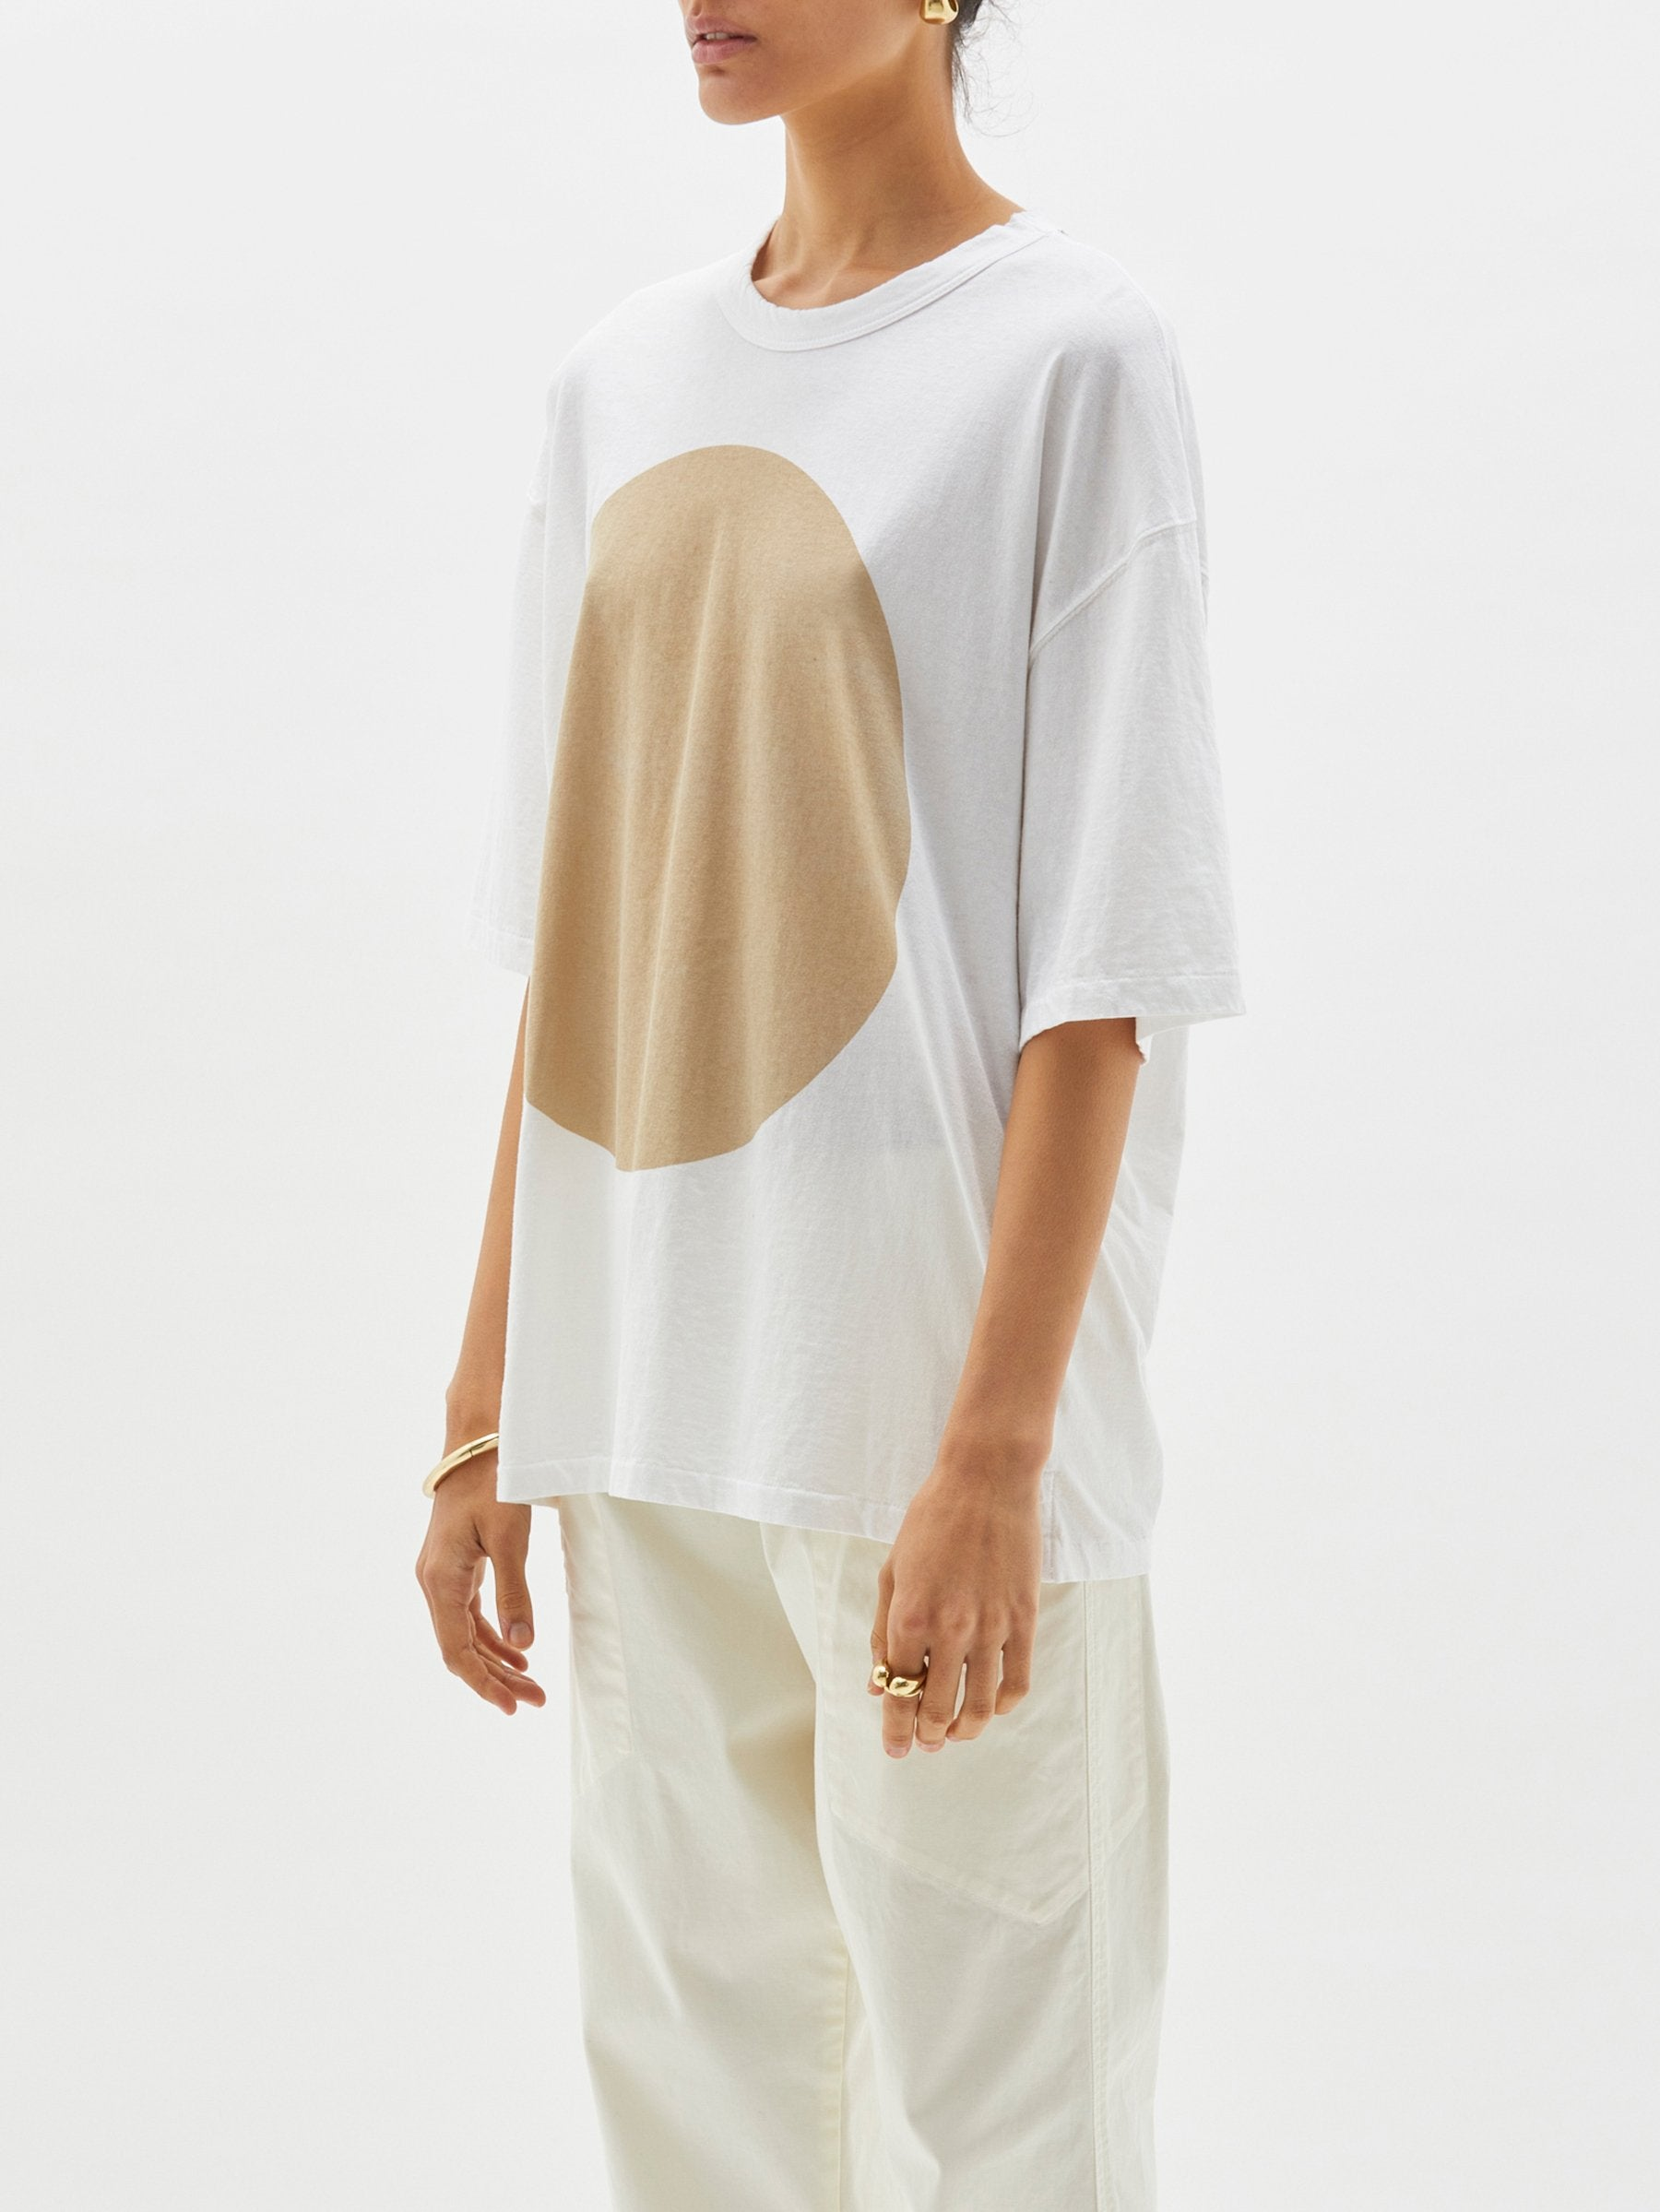 Bassike Oversized Wide Heritage Dot Short Sleeve Tshirt White/Tan